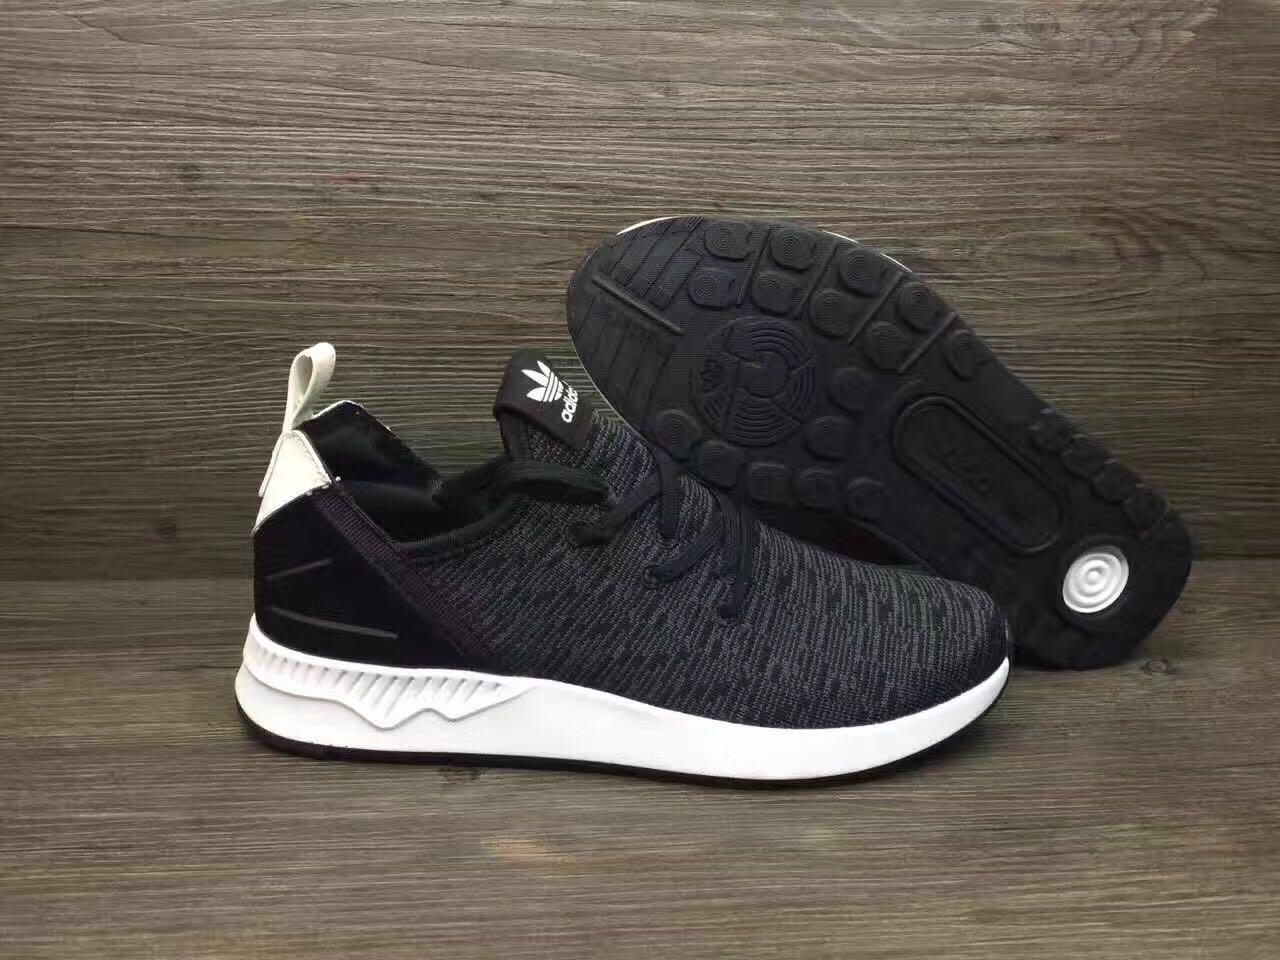 Adidas Shoe ZX FLUX Knitted Surface Black